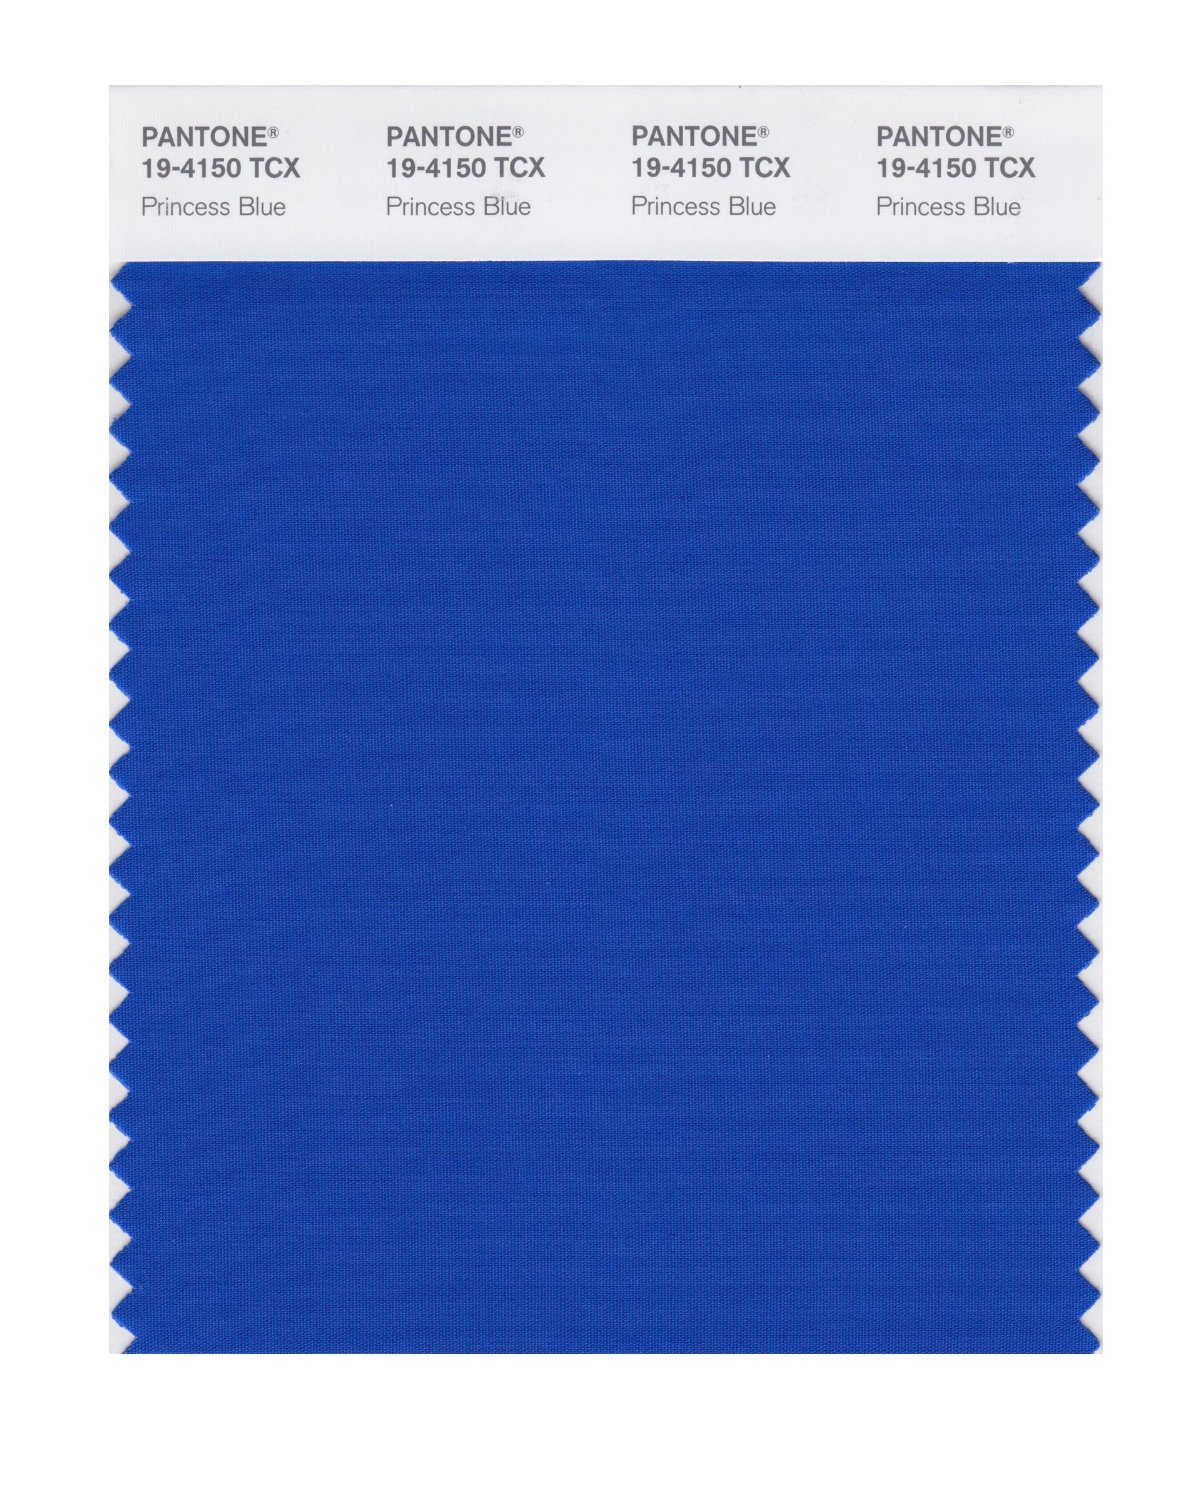 Pantone Smart Swatch 19-4150 Princess Blue